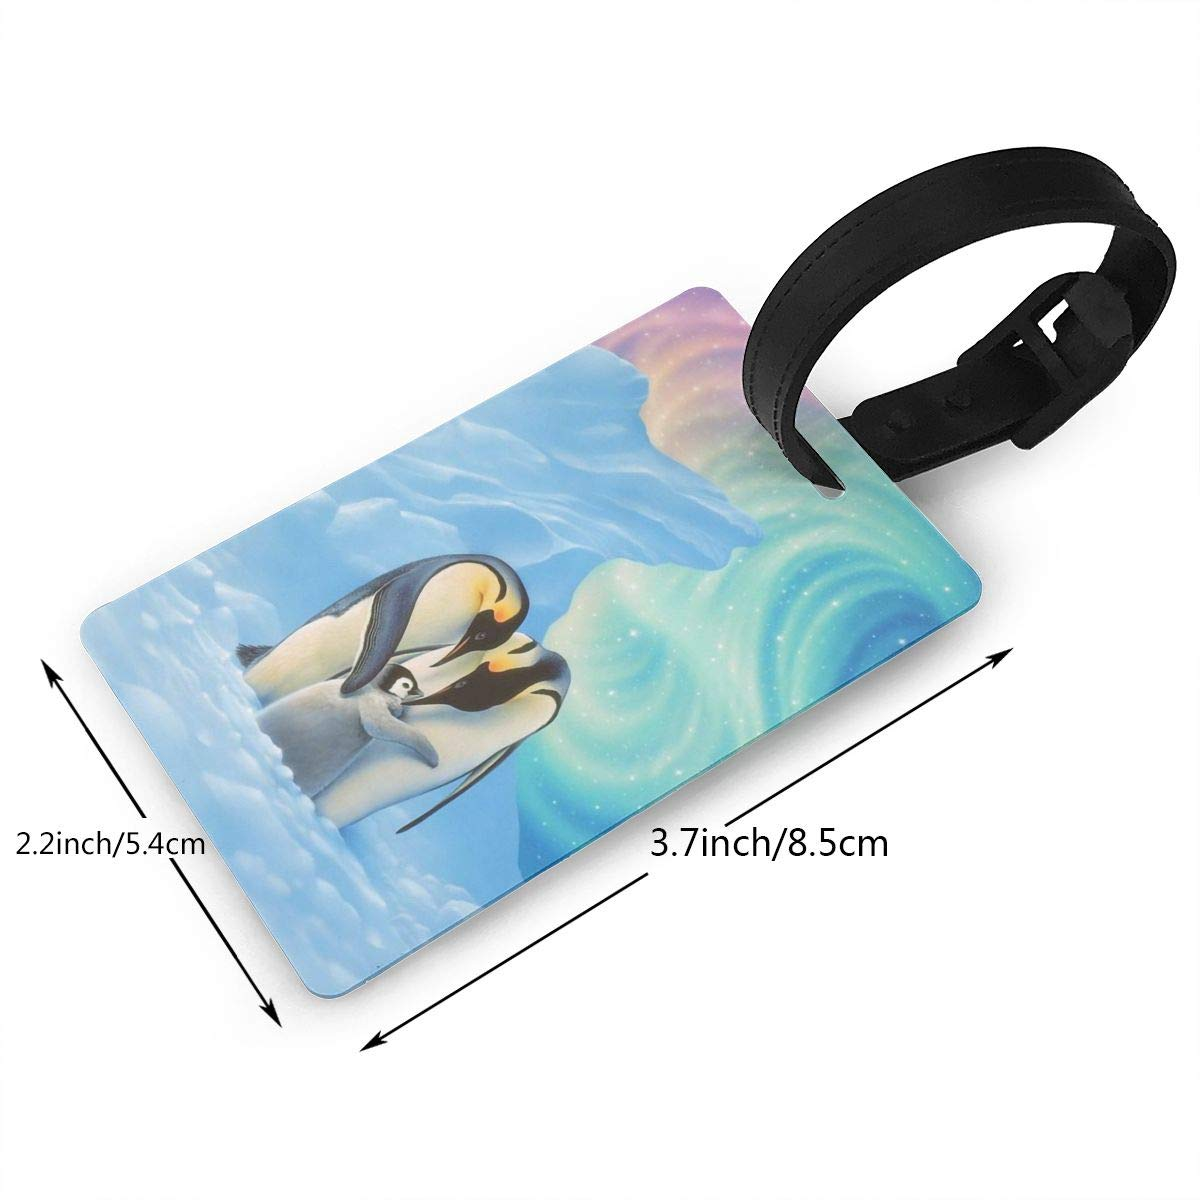 Penguins Family1 Handbag Tag For Travel Tags Accessories 2 Pack Luggage Tags